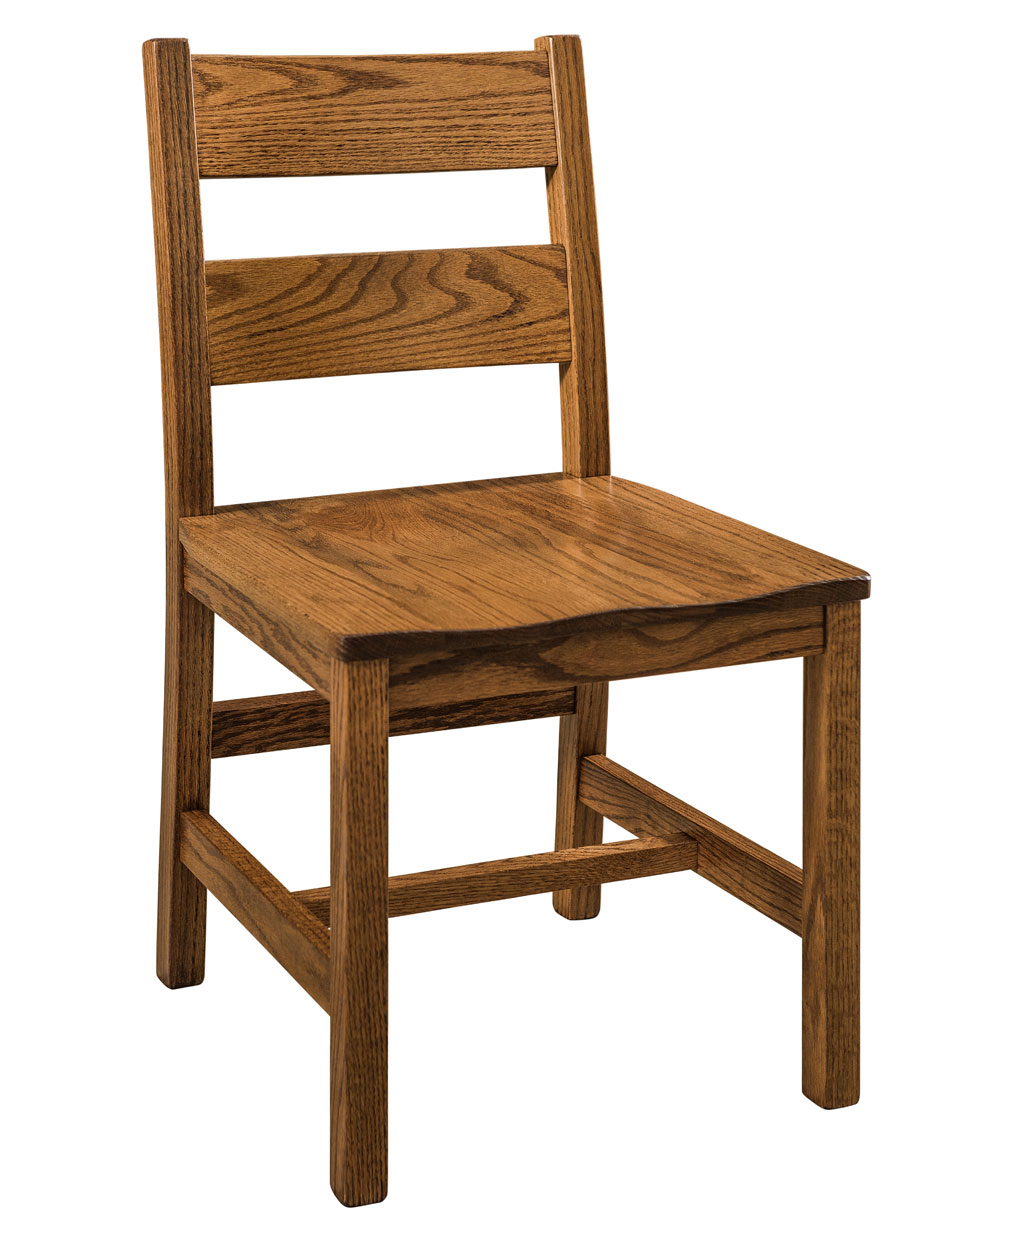 Memphis Amish Chair [Side Chair] - Memphis Kitchen Chair - Amish Direct Furniture